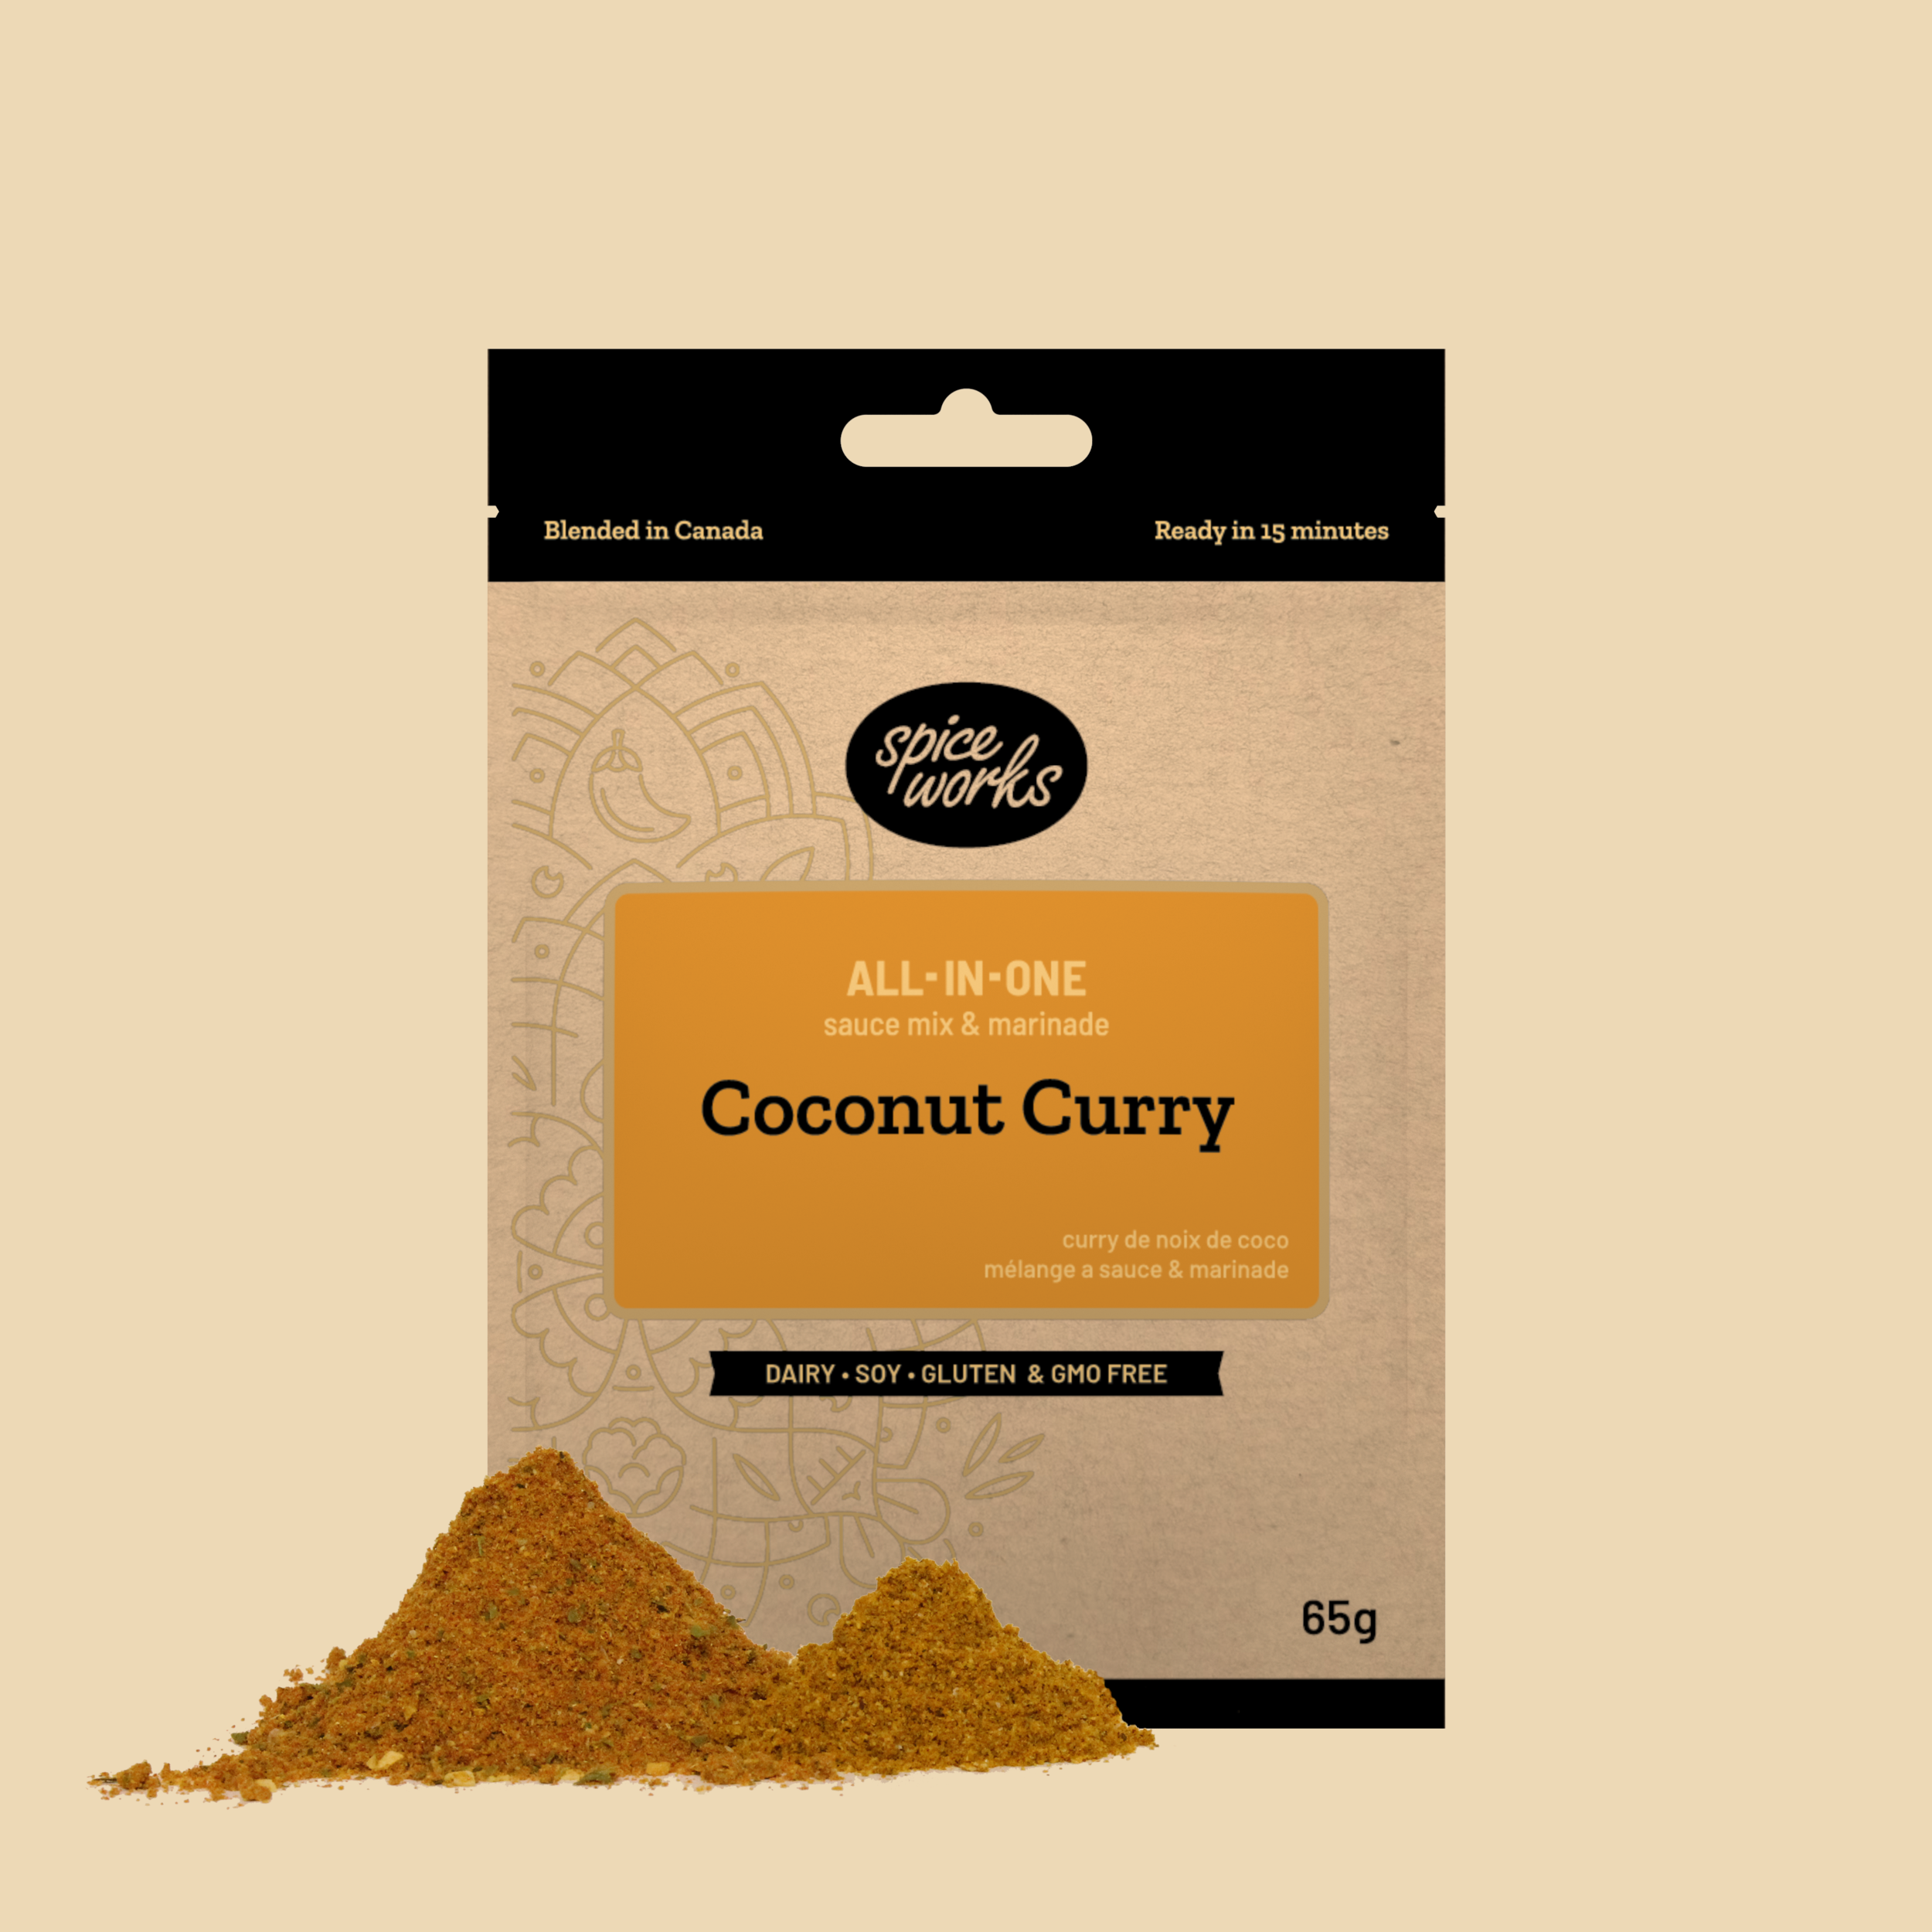 sw_coco curry - 061119.png